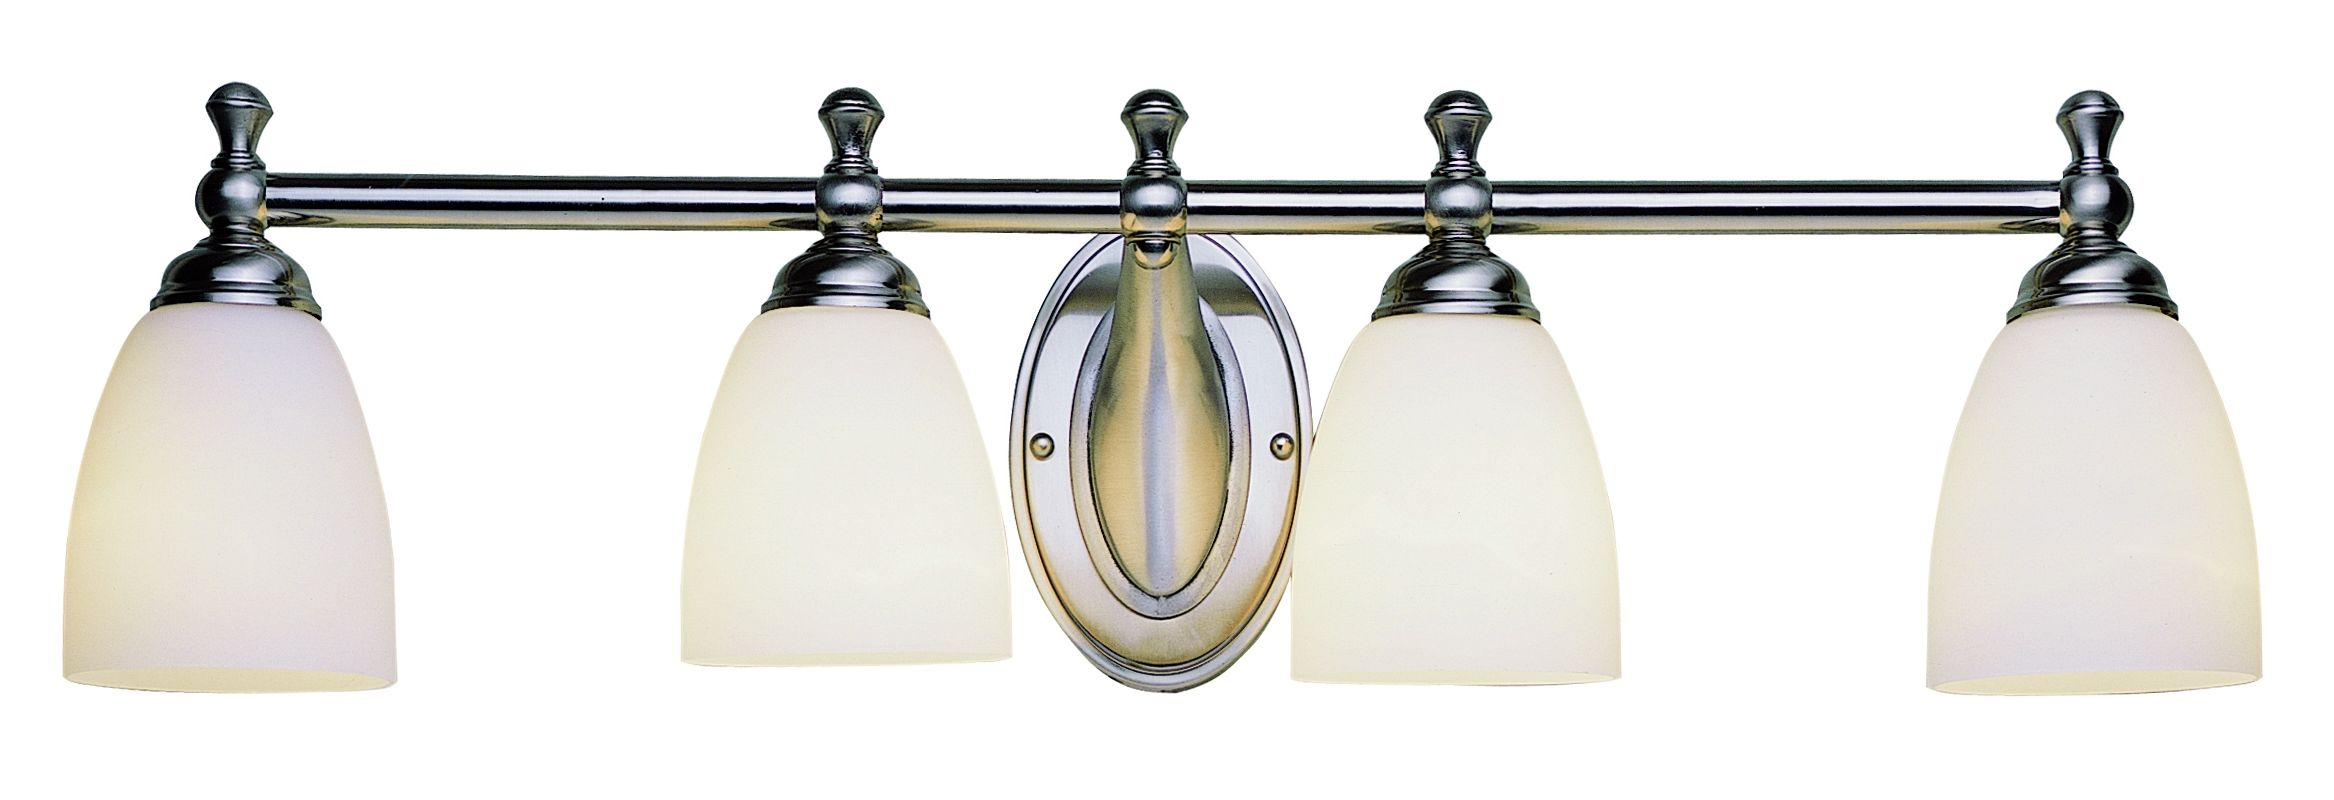 Trans Globe Lighting 3654 Four Light Up Lighting Wall Sconce Rubbed Sale $188.10 ITEM: bci723752 ID#:3654 ROB UPC: 736916202503 :